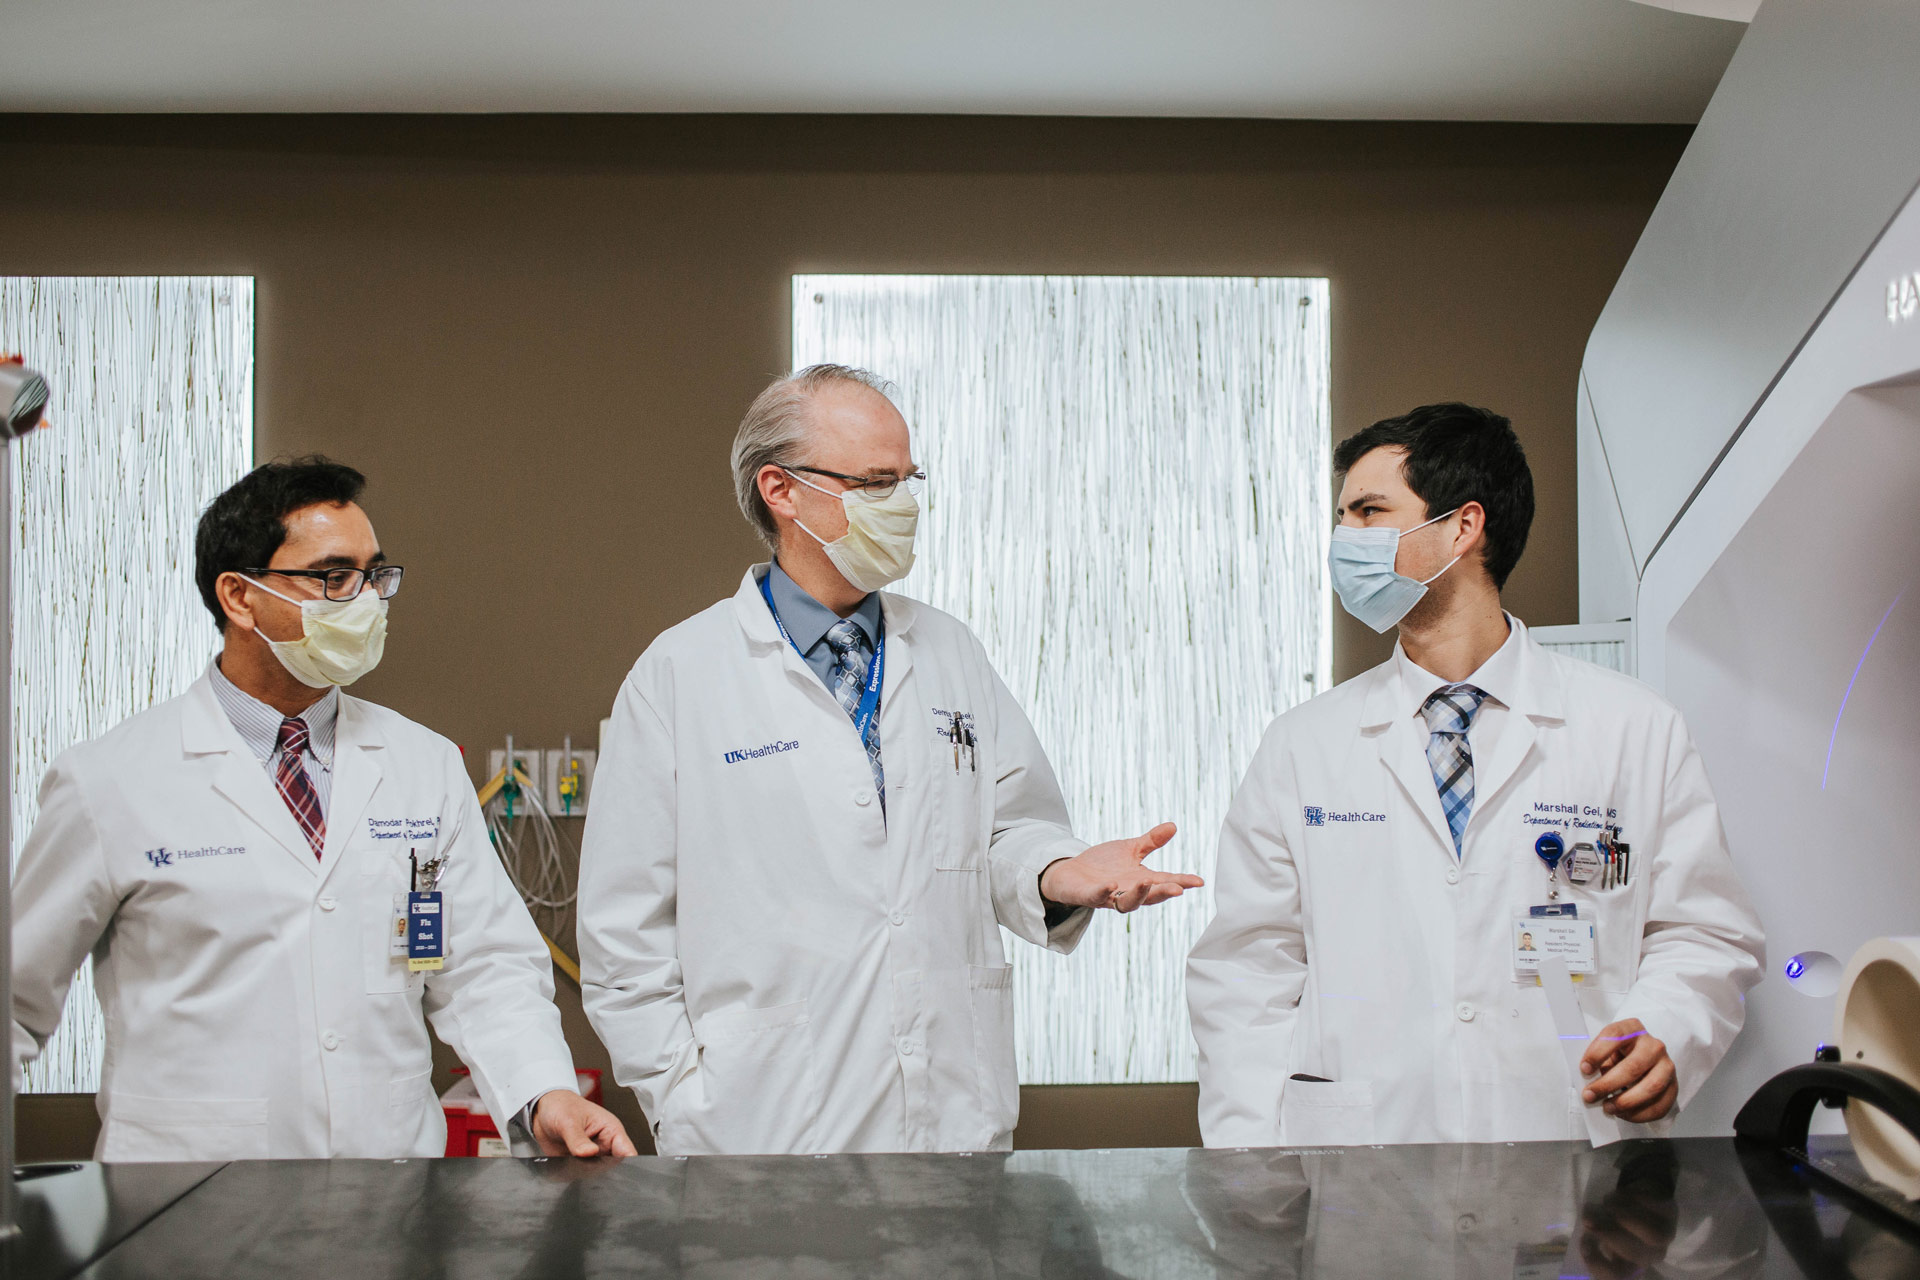 Marshall stands beside two directors of medical physics in his Radiation Oncology department: Dr. Damodar Pohkrel, middle-aged South Asian man with black hair, and Dr. Dennis Cheek, a middle-aged white man with grey hair. Both men are wearing their doctor's coats and spectacles. All three are wearing masks.